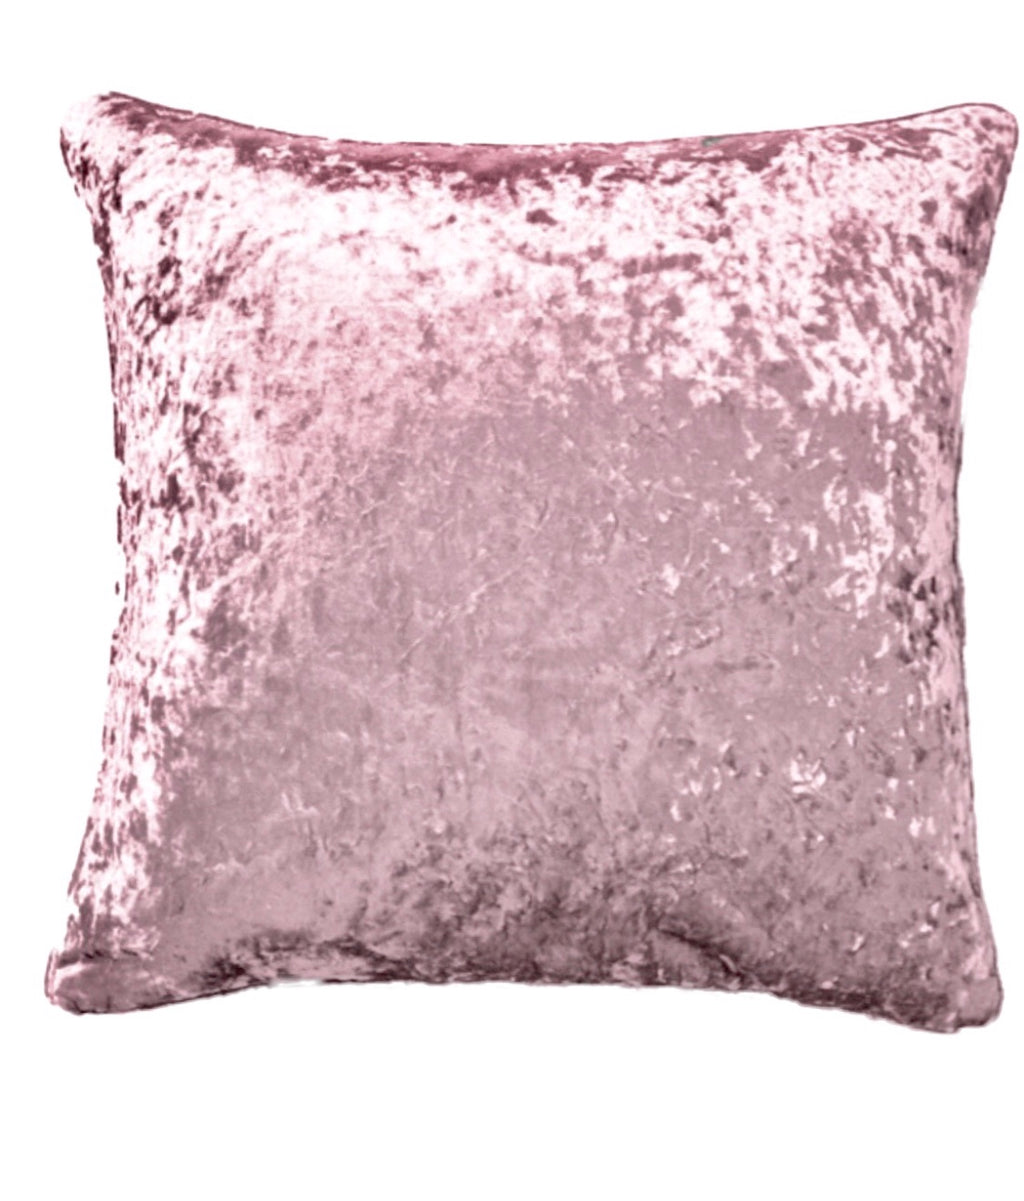 Crush on You- Crushed Velvet Decor Throw Pillow